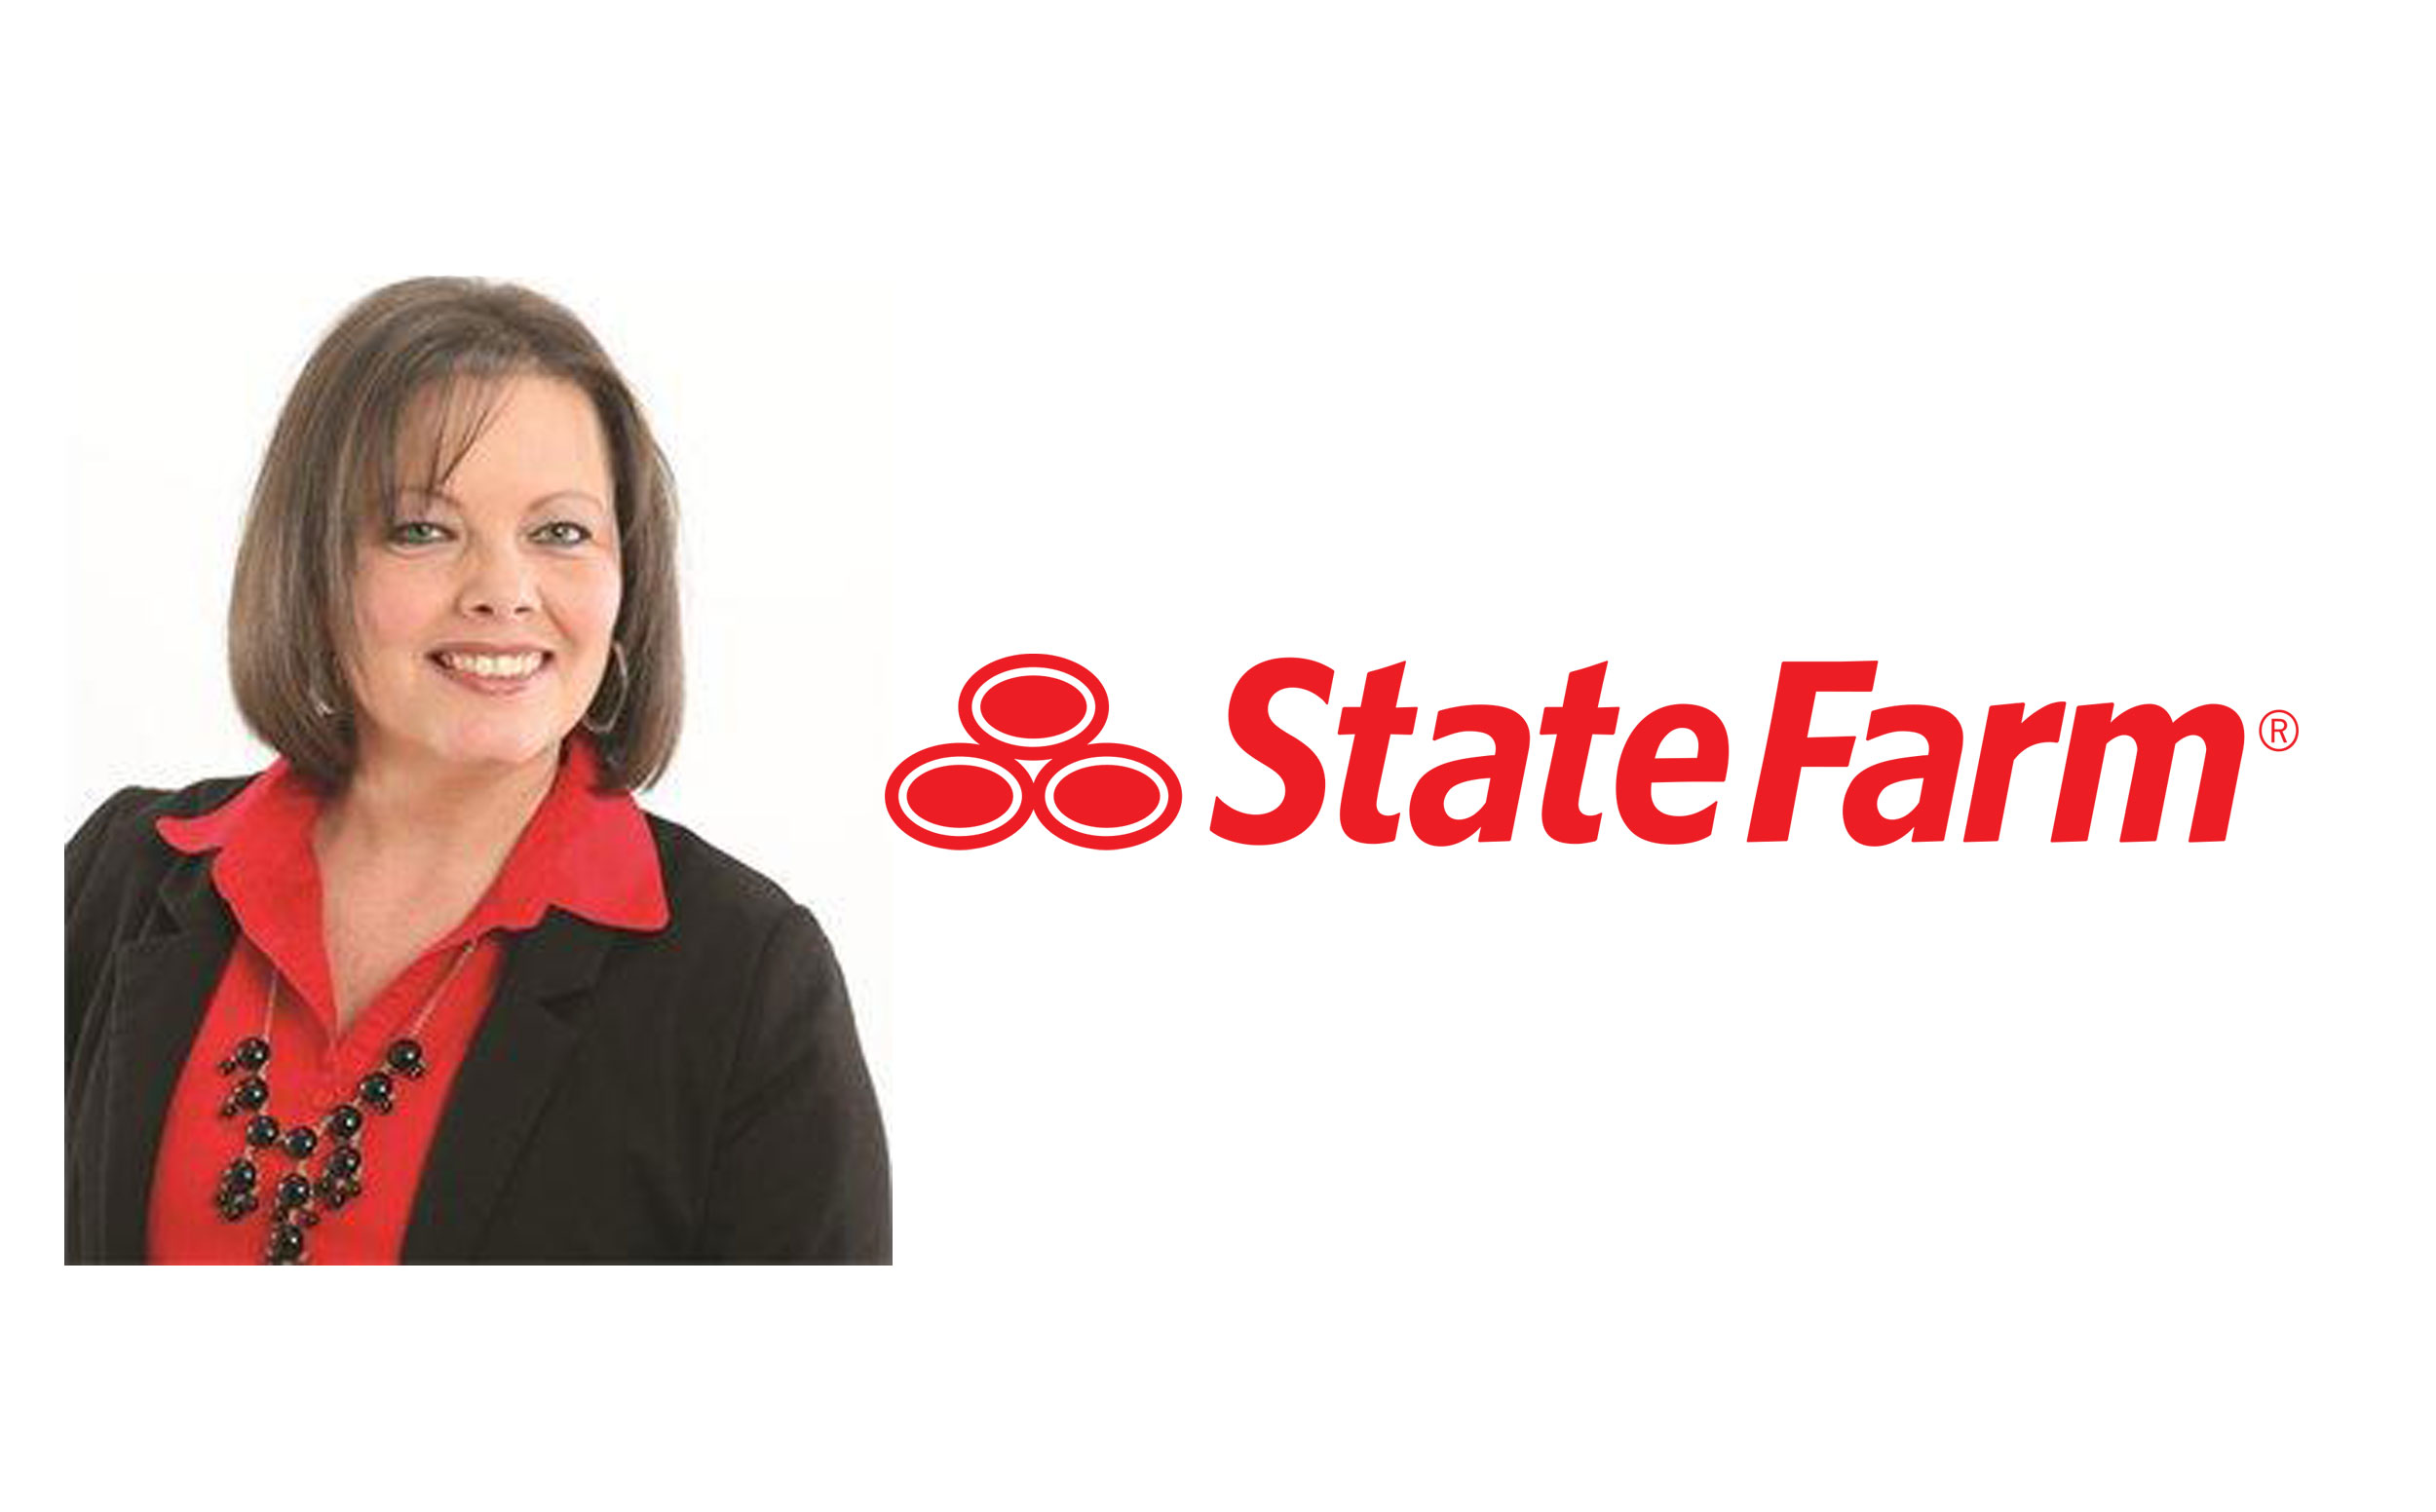 Angie Franklin, State Farm